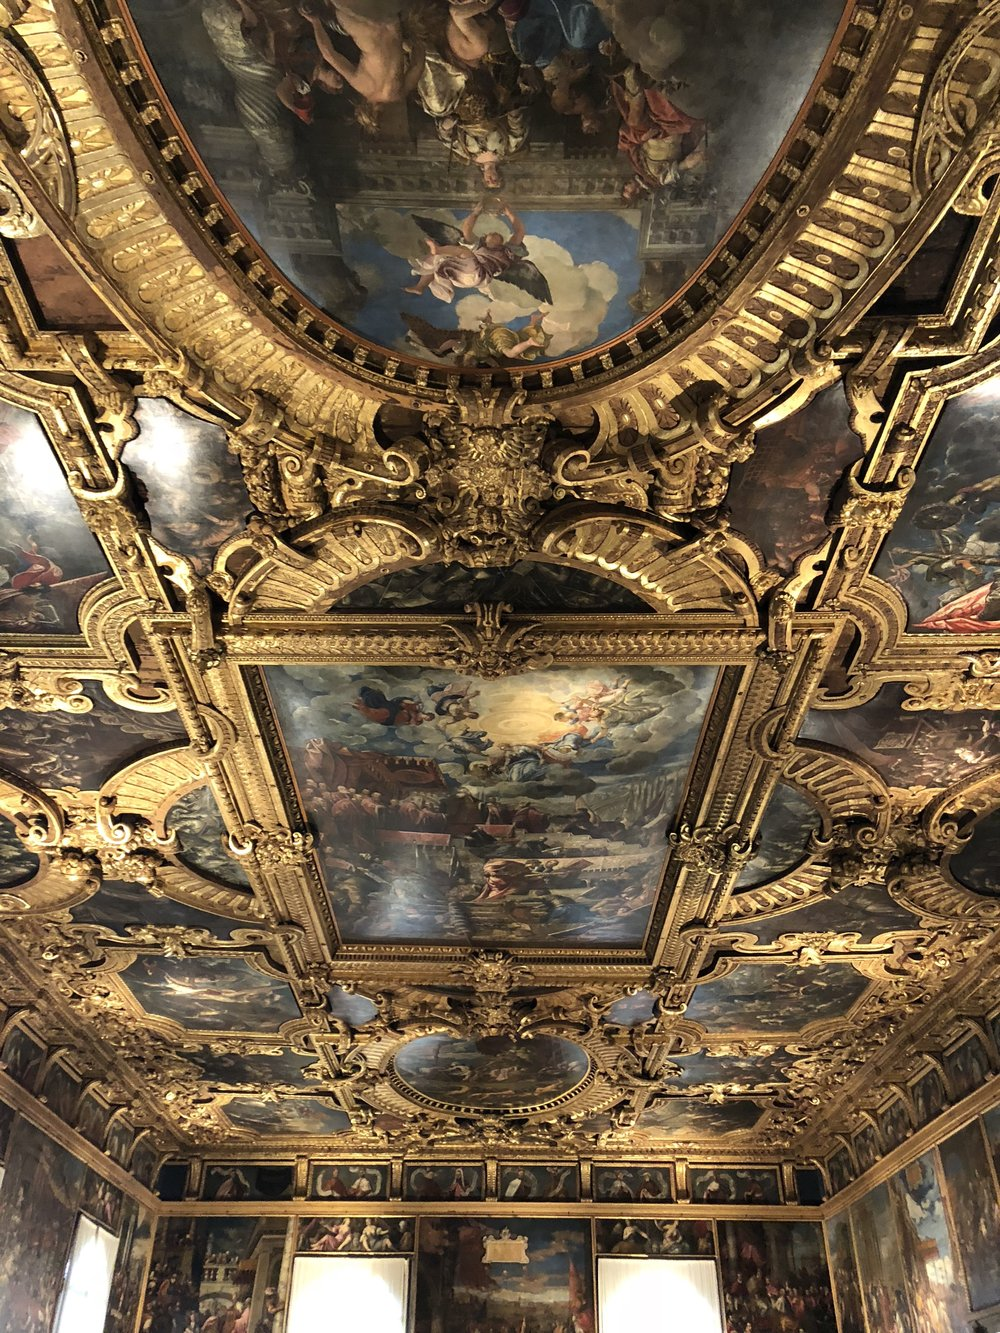 The ceiling in the Chamber of the Great Council